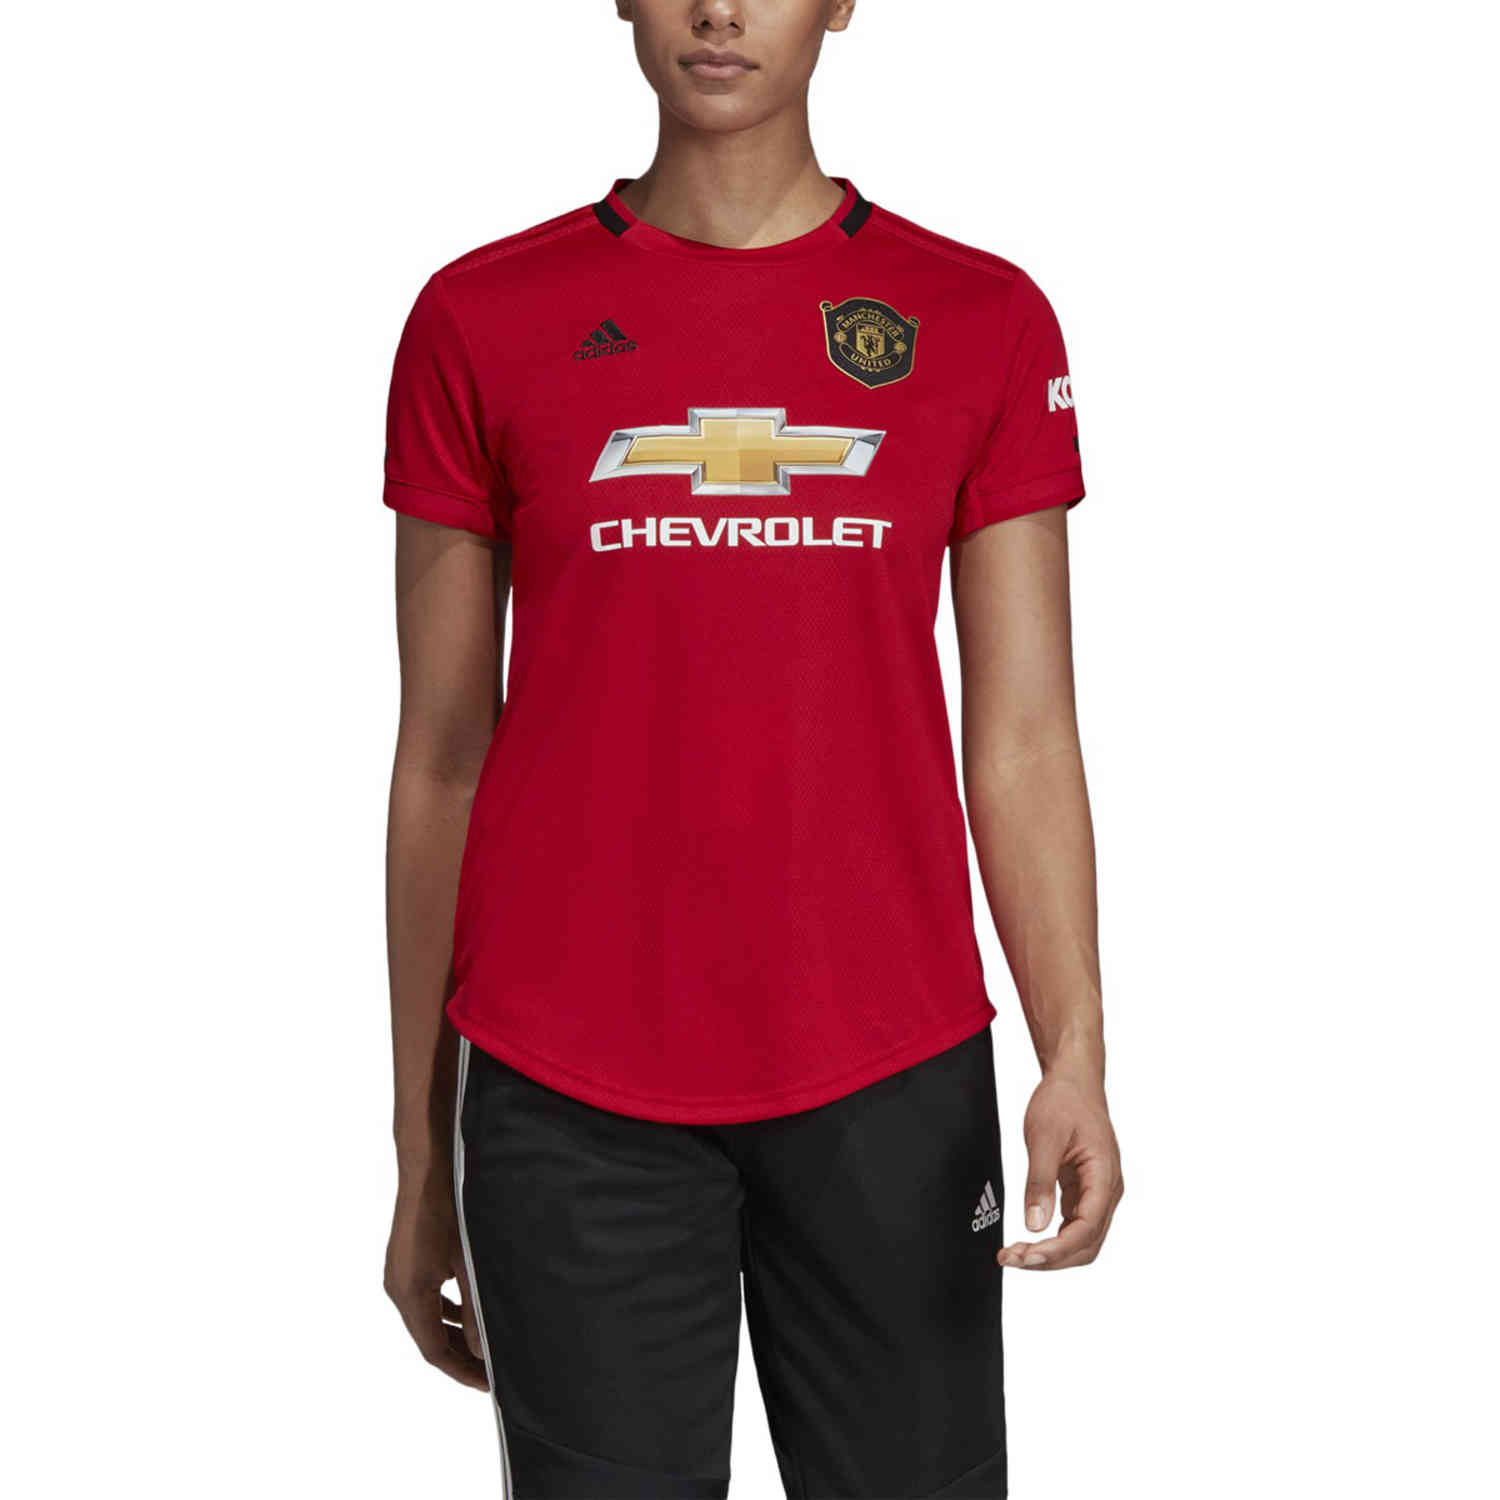 womens adidas manchester united home jersey 2019 20 soccerpro womens adidas manchester united home jersey 2019 20